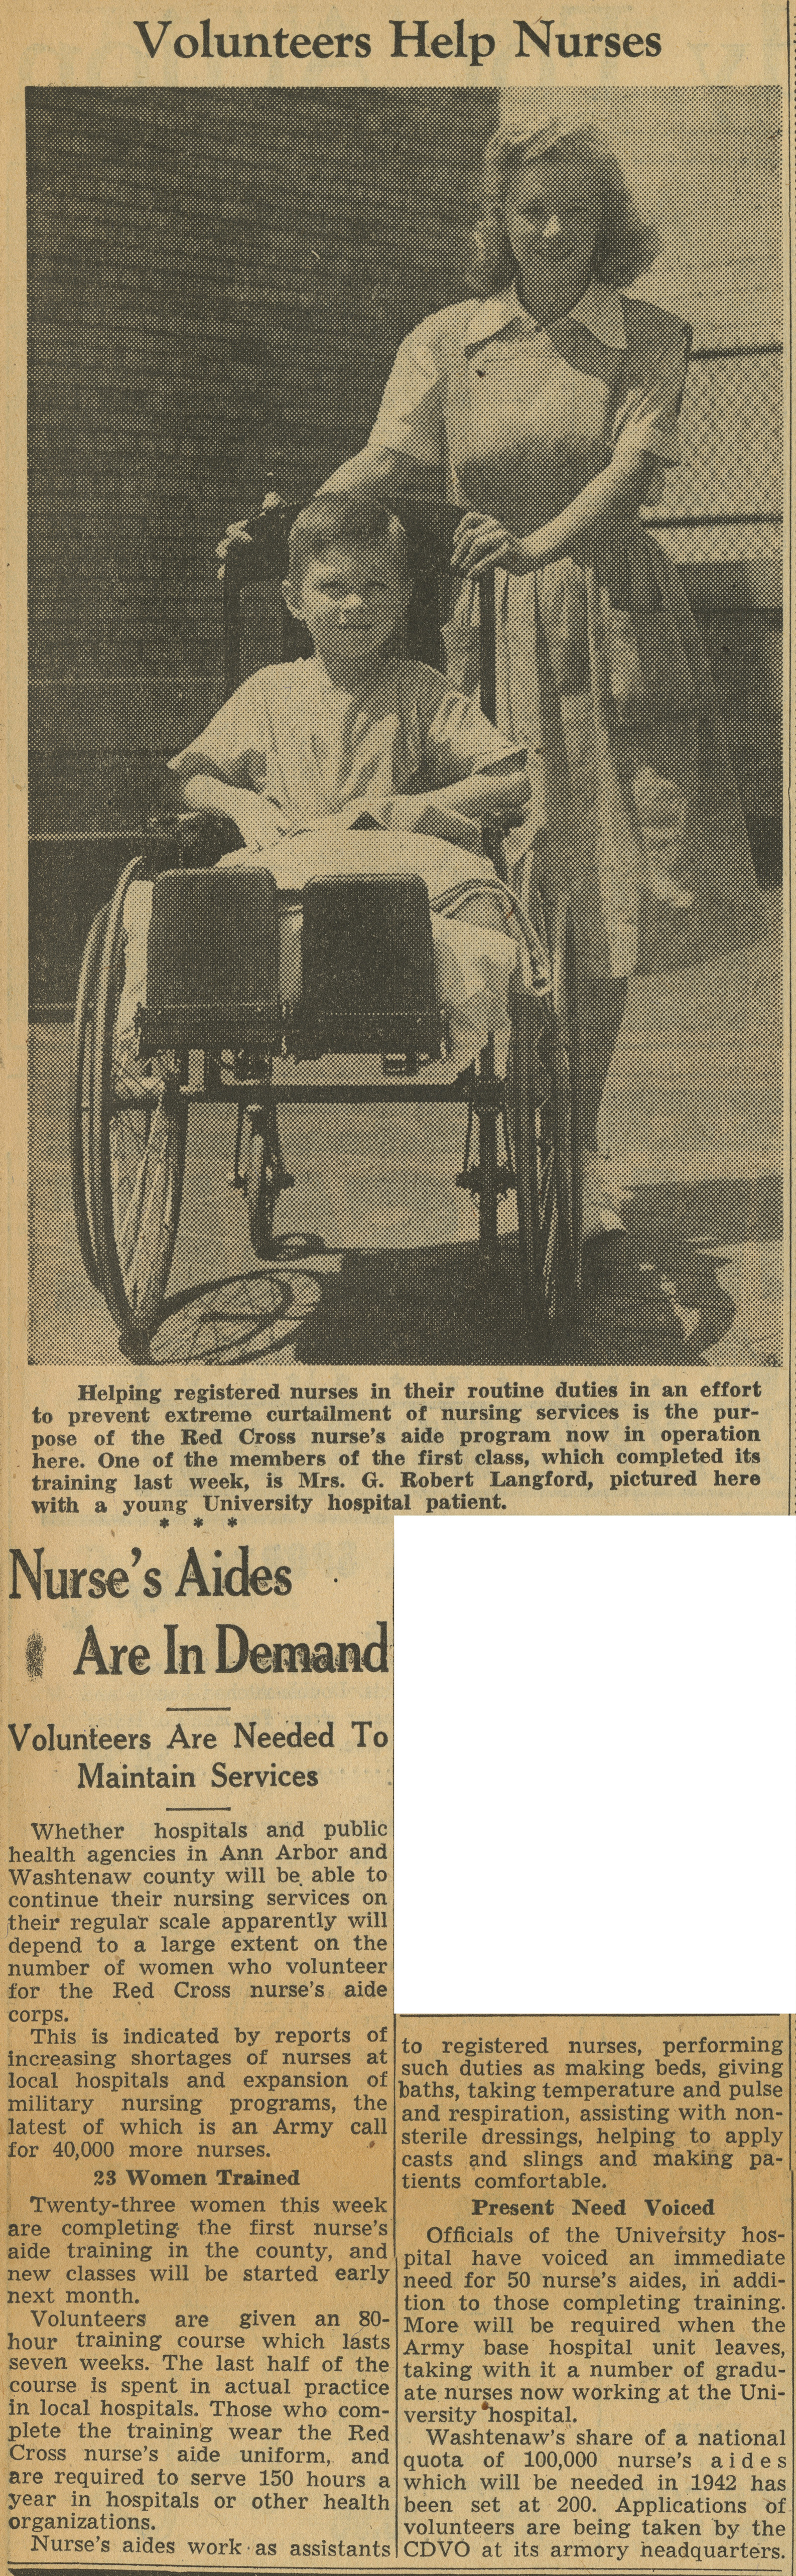 Nurse's Aides Are In Demand image